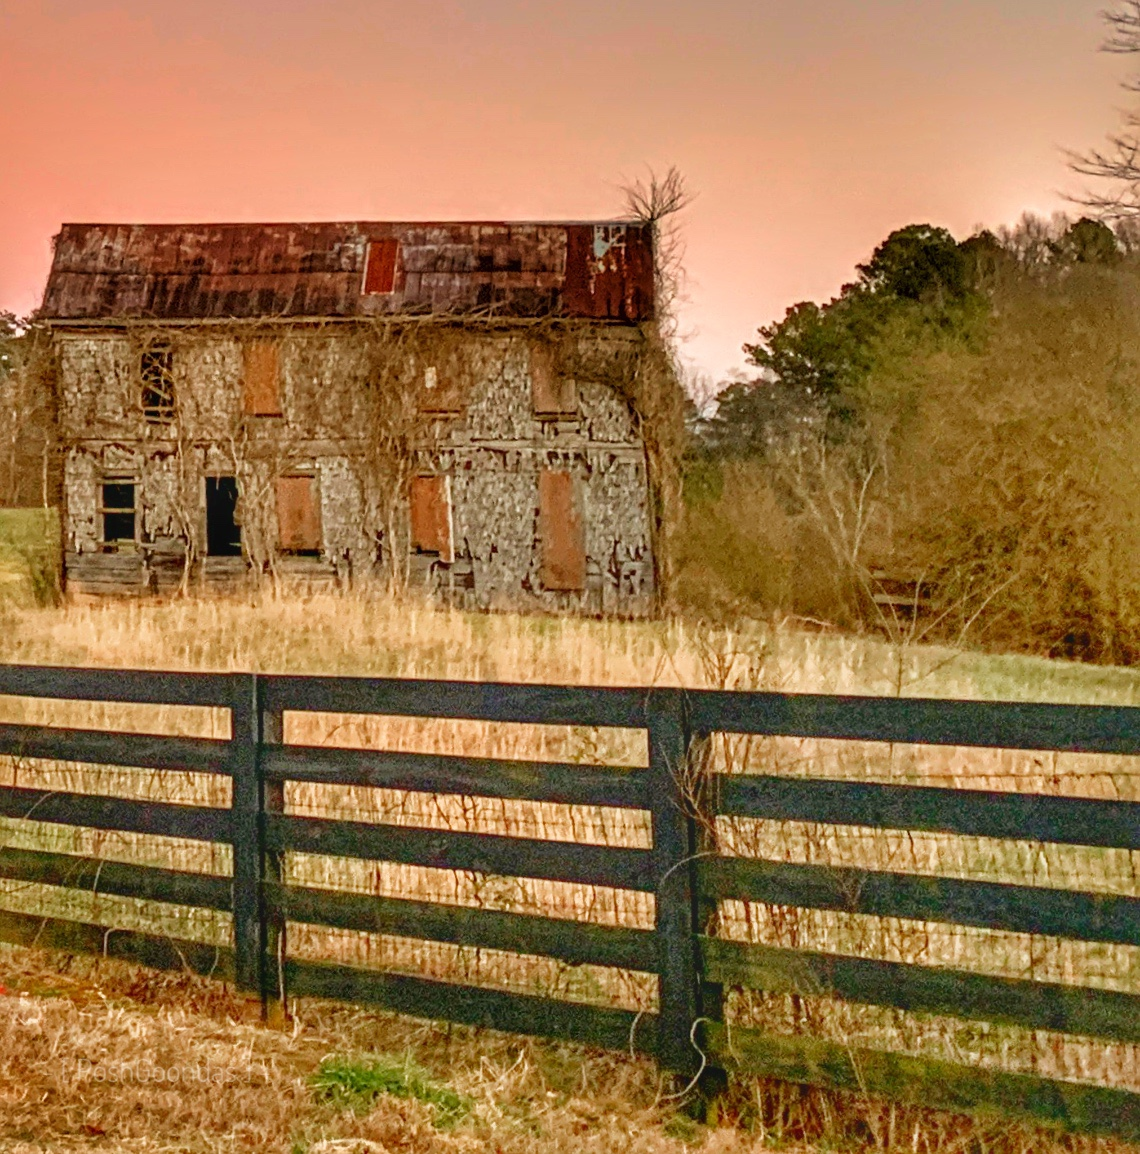 The building behind the gate: The Shingle House